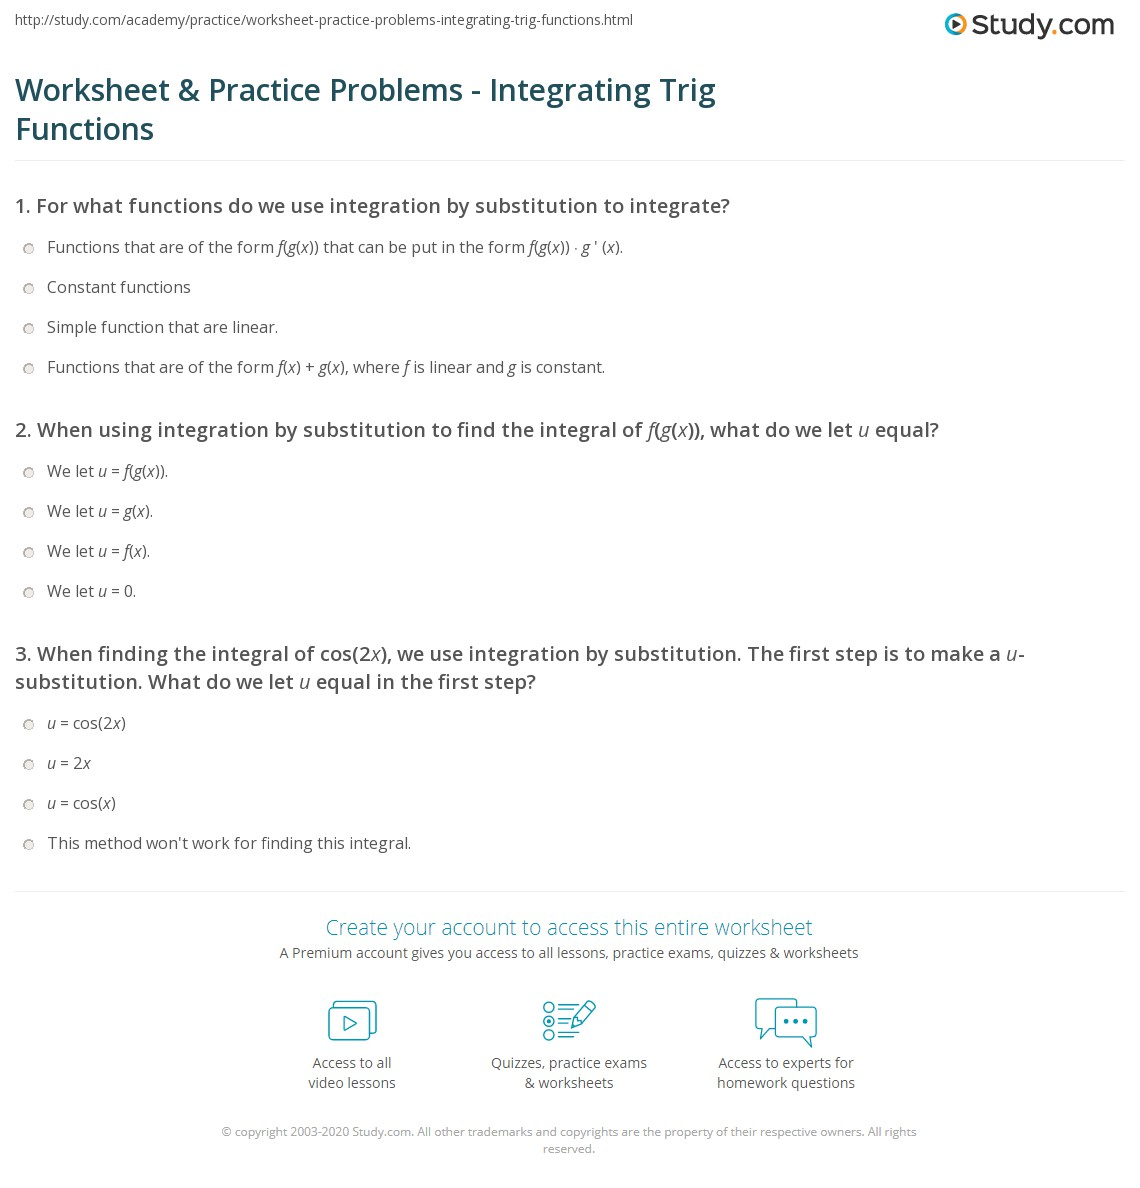 Worksheets Integration By Substitution Worksheet worksheet practice problems integrating trig functions study com print solving the integral of cos2x worksheet